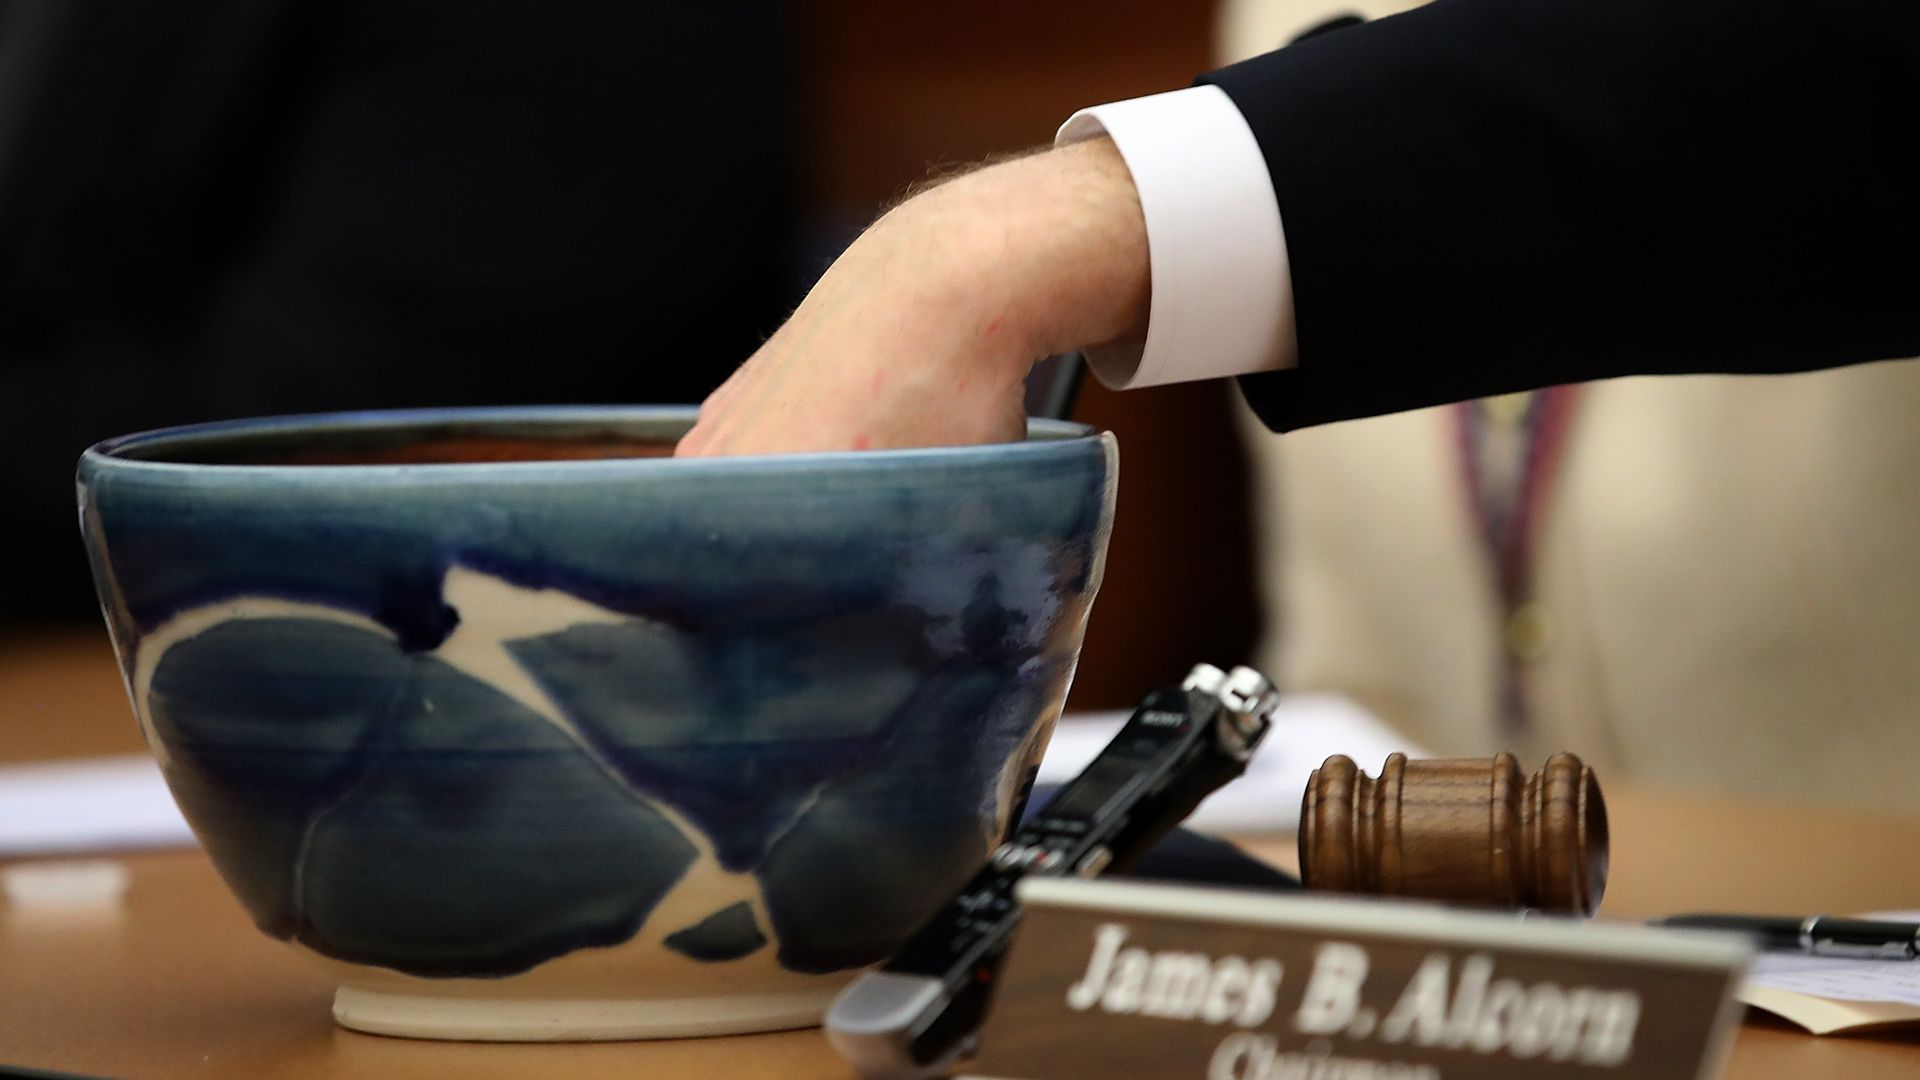 Someone has their hand in a bowl to draw names to settle an election tie